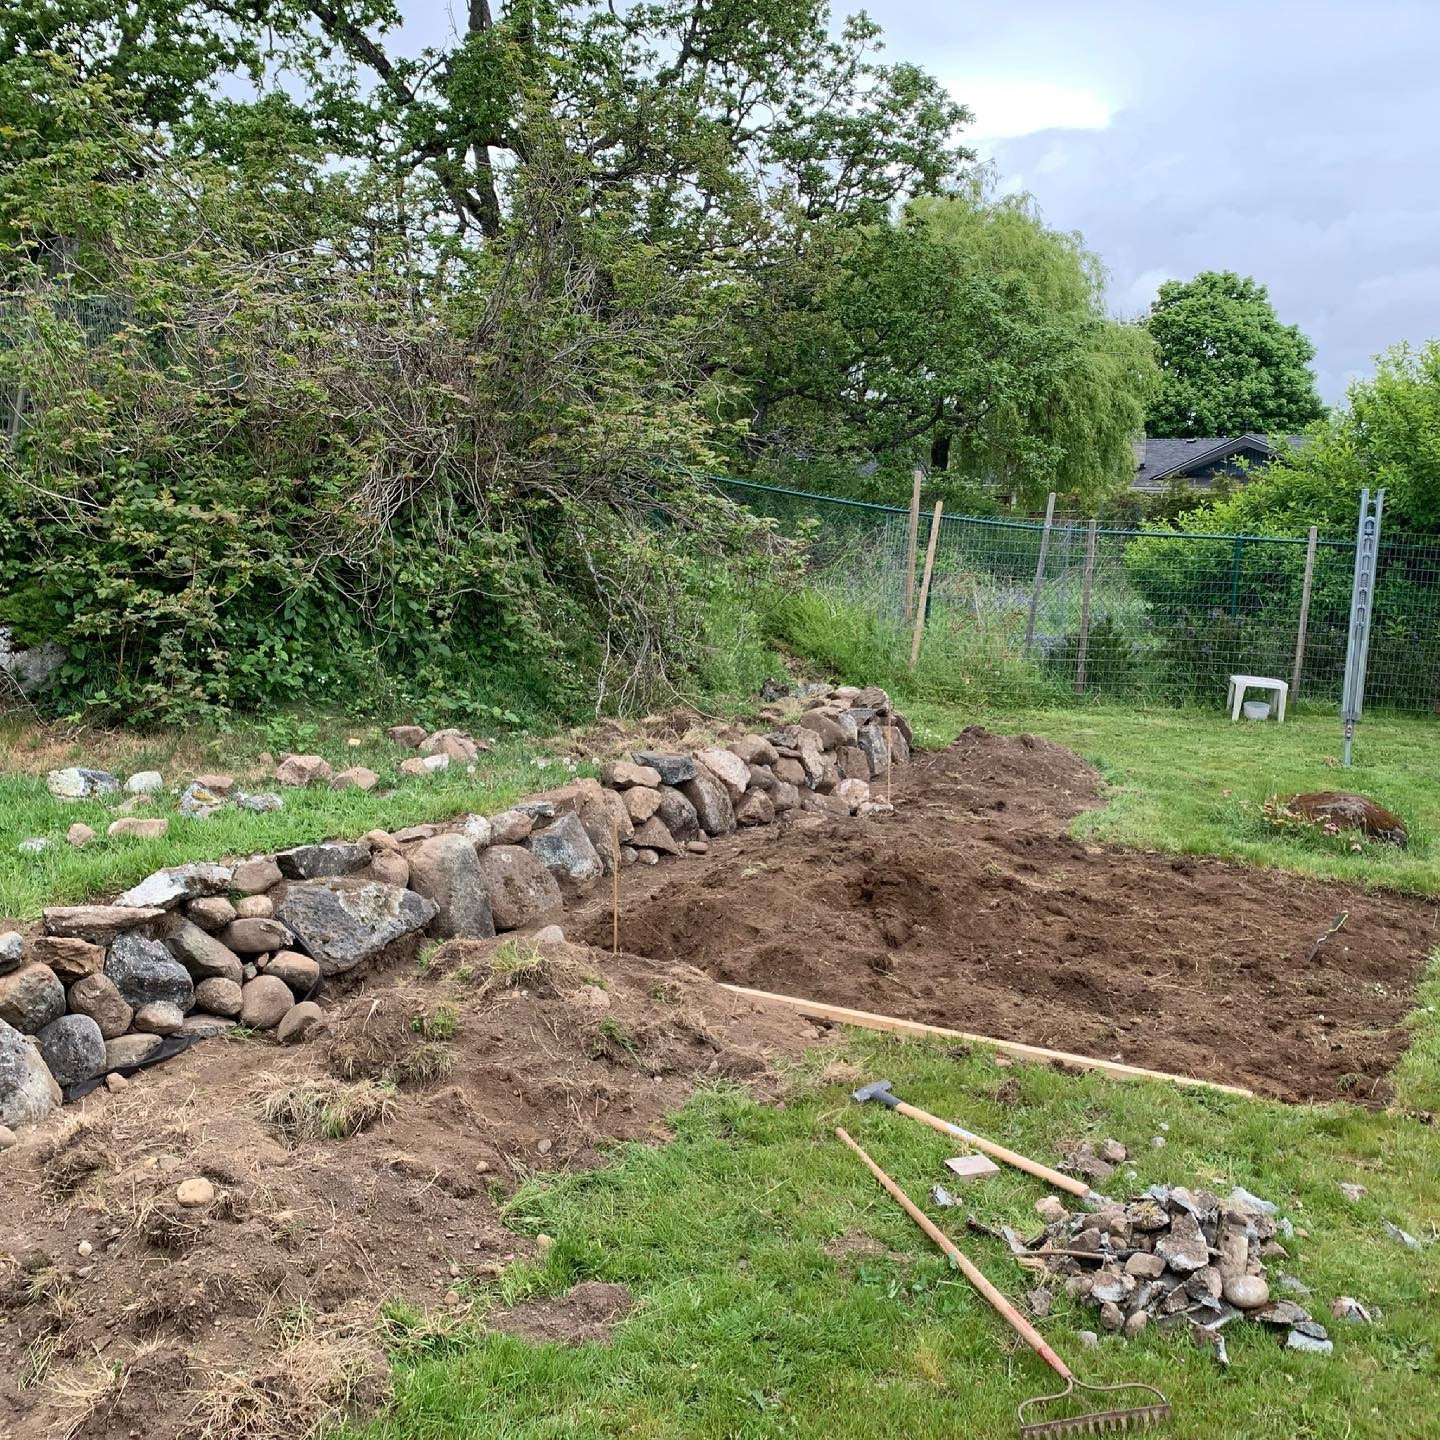 Wall completed last week. Almost have all the area cleared of grass now. Next up is levelling and ordering the wood! #backyardgarden #raisedbeds #damndeer #covidproject